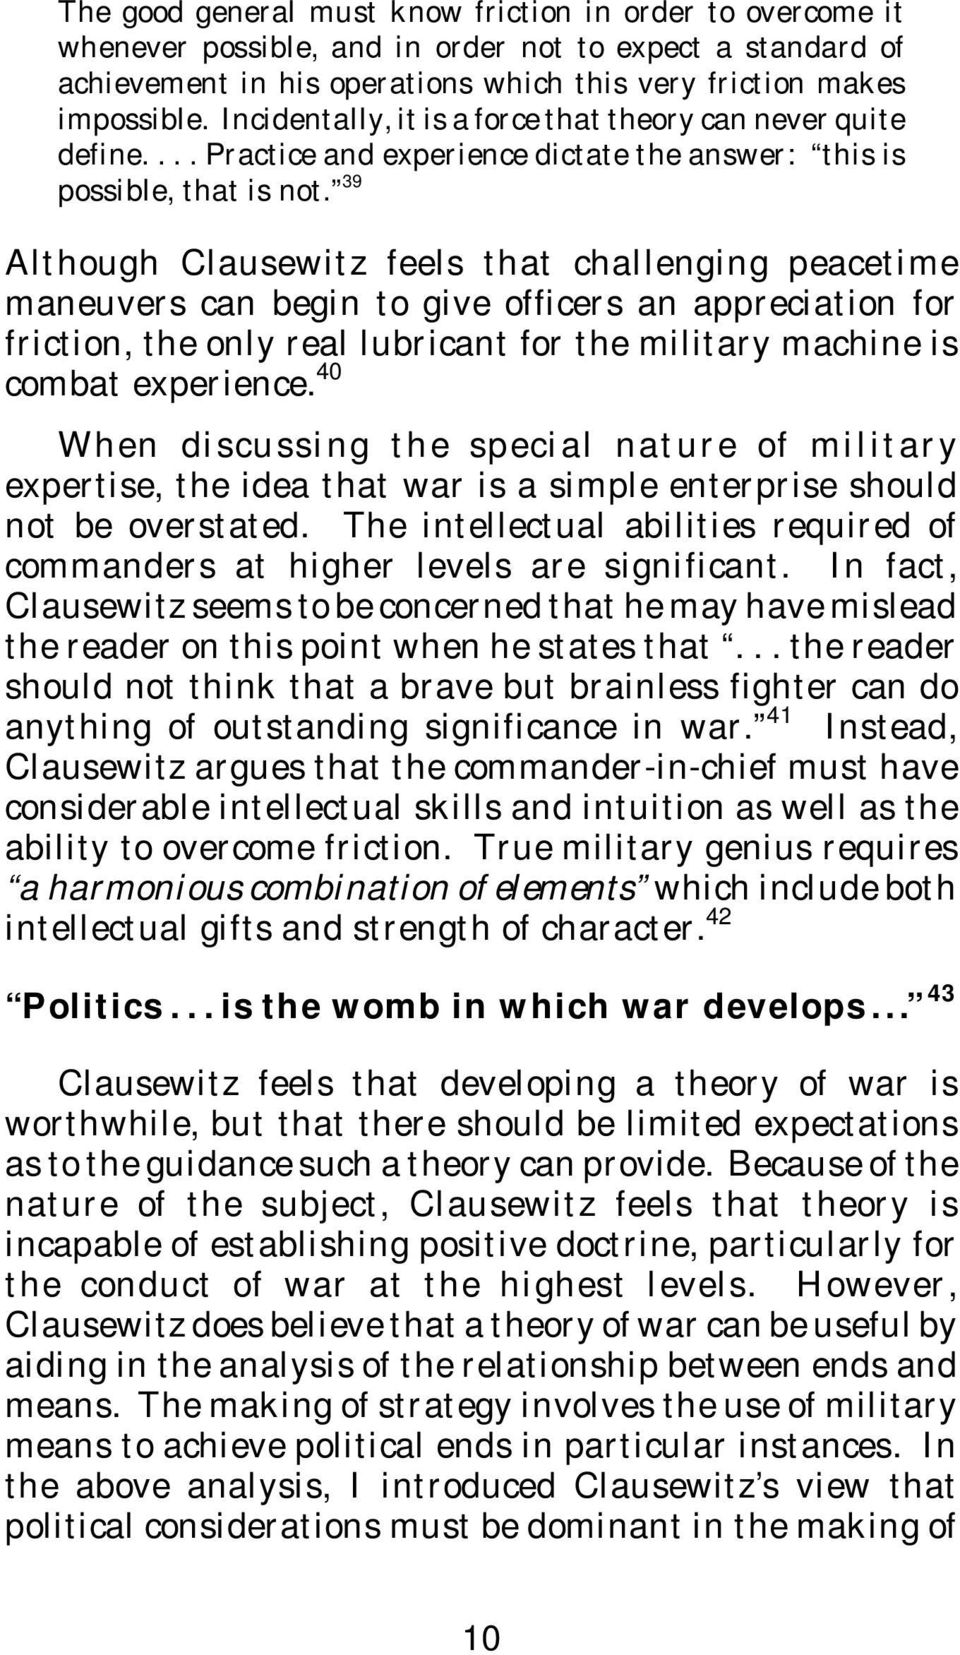 39 Although Clausewitz feels that challenging peacetime maneuvers can begin to give officers an appreciation for friction, the only real lubricant for the military machine is combat experience.